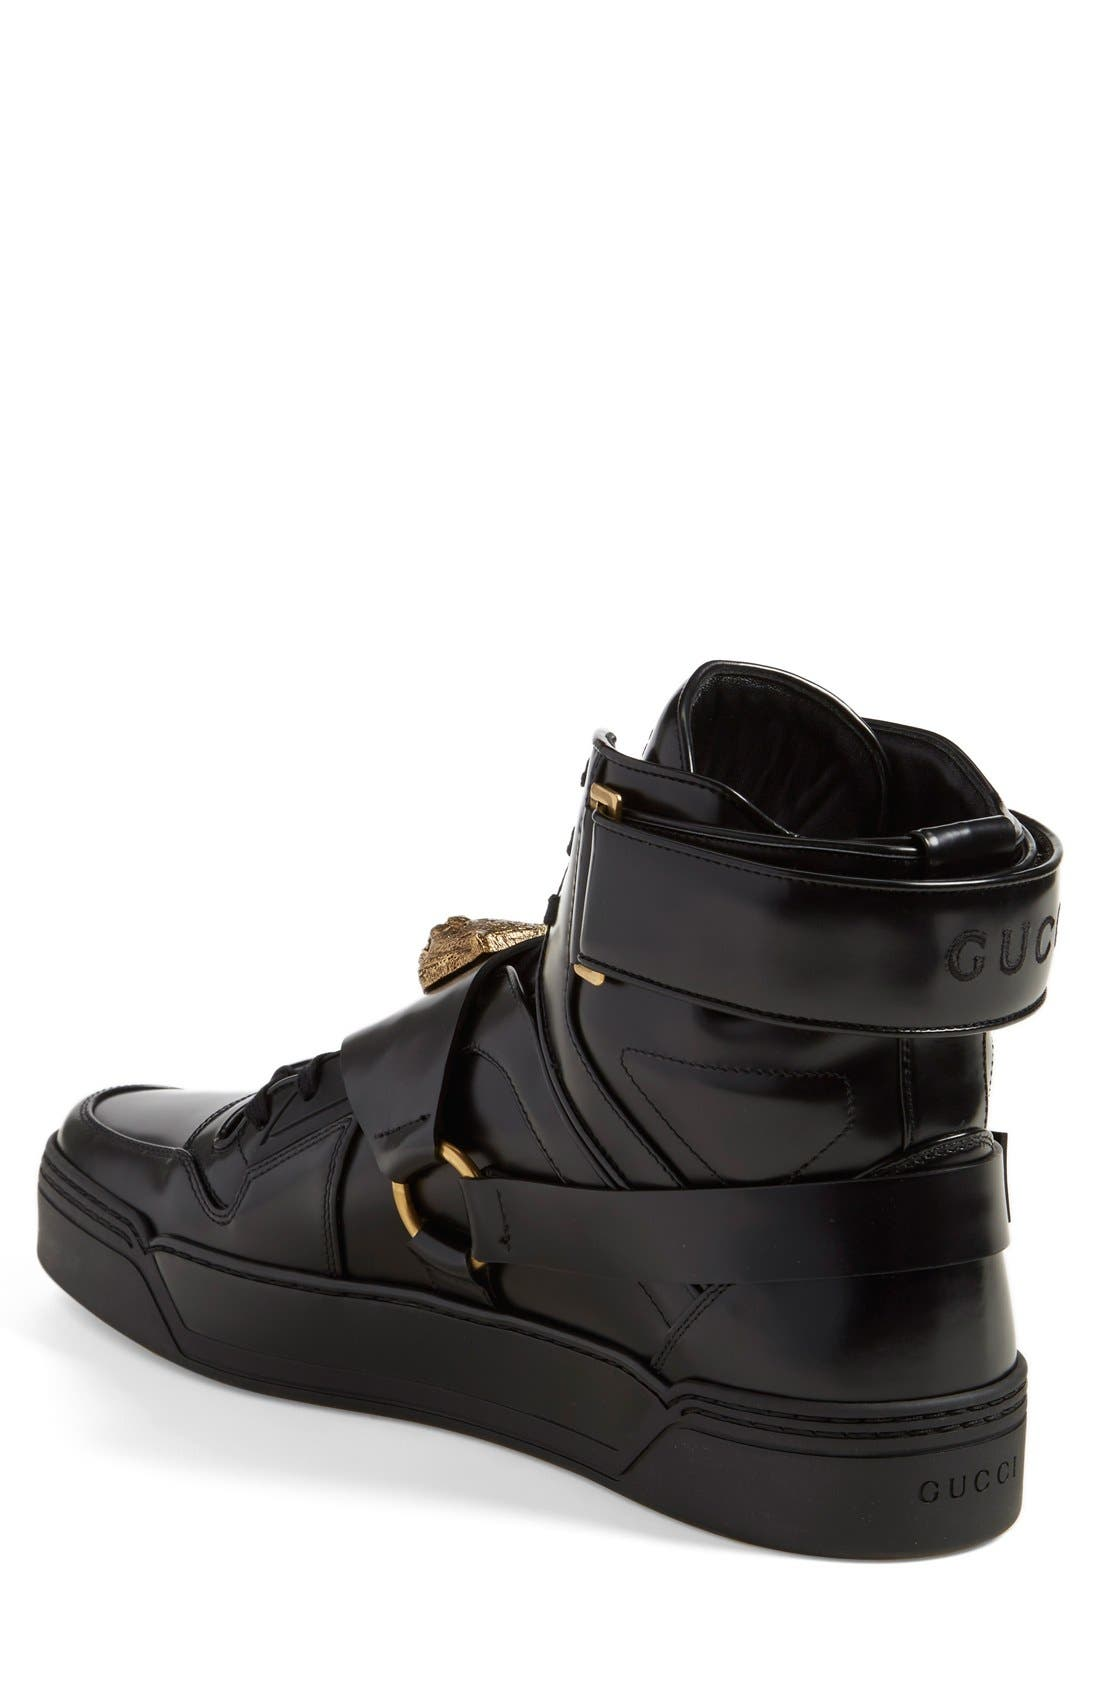 GUCCI,                             'Tiger' High Top Sneaker,                             Alternate thumbnail 4, color,                             001